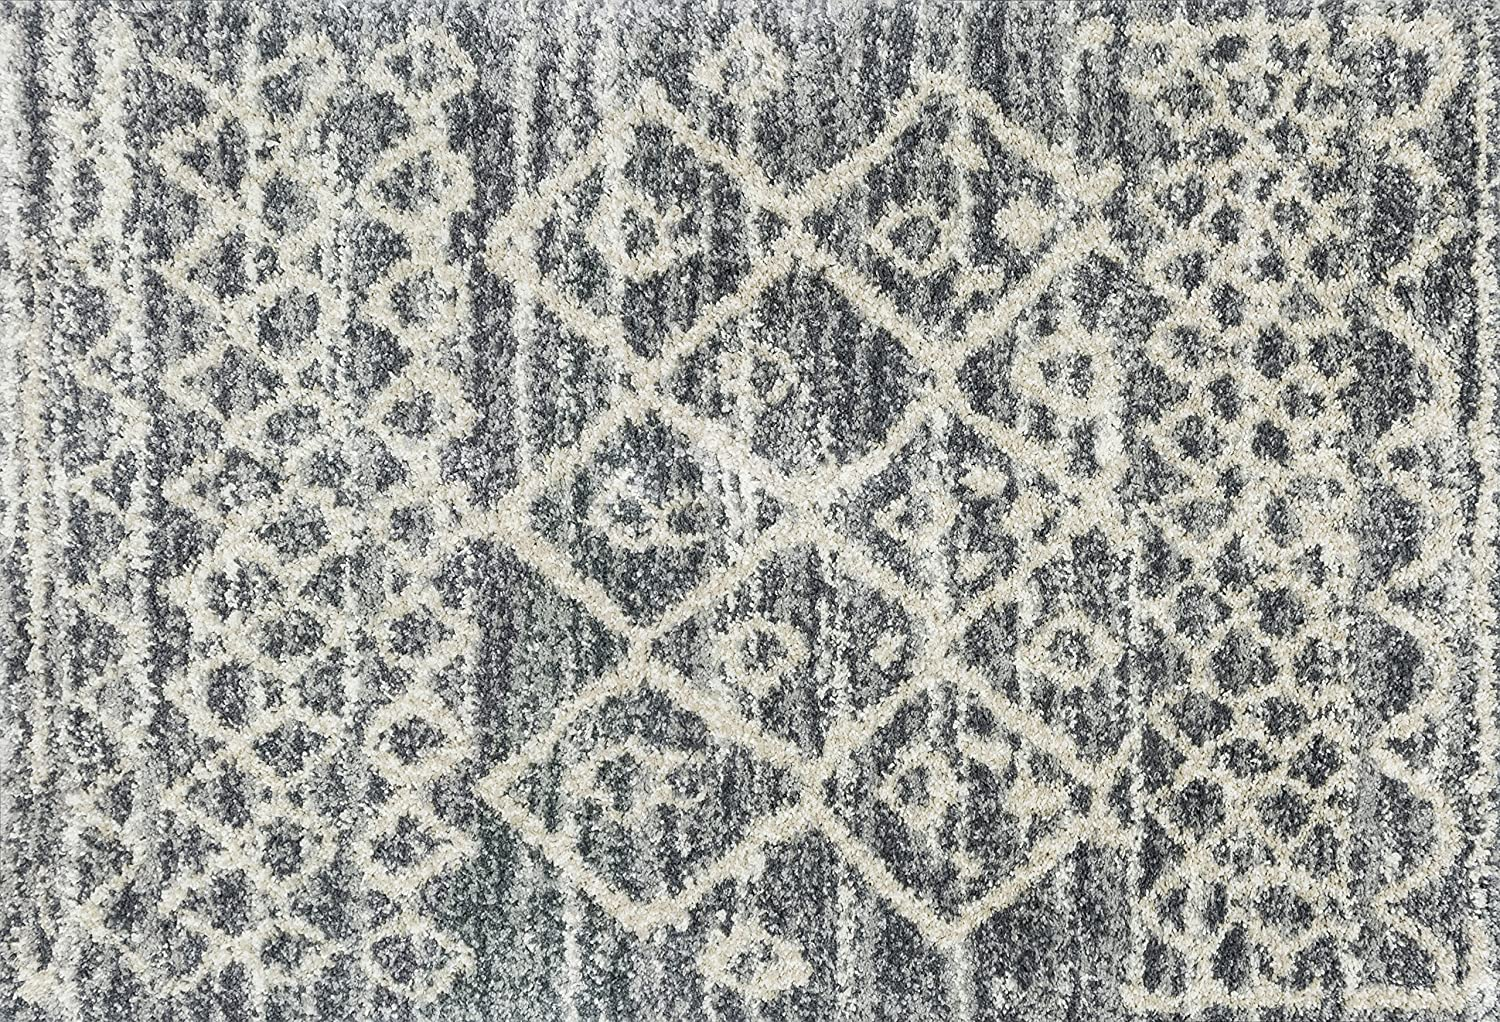 Loloi Rugs QNCYQC-02GTBE Quincy Shag Collection Area Rug 2'-3' x 12' Graphite/Beige